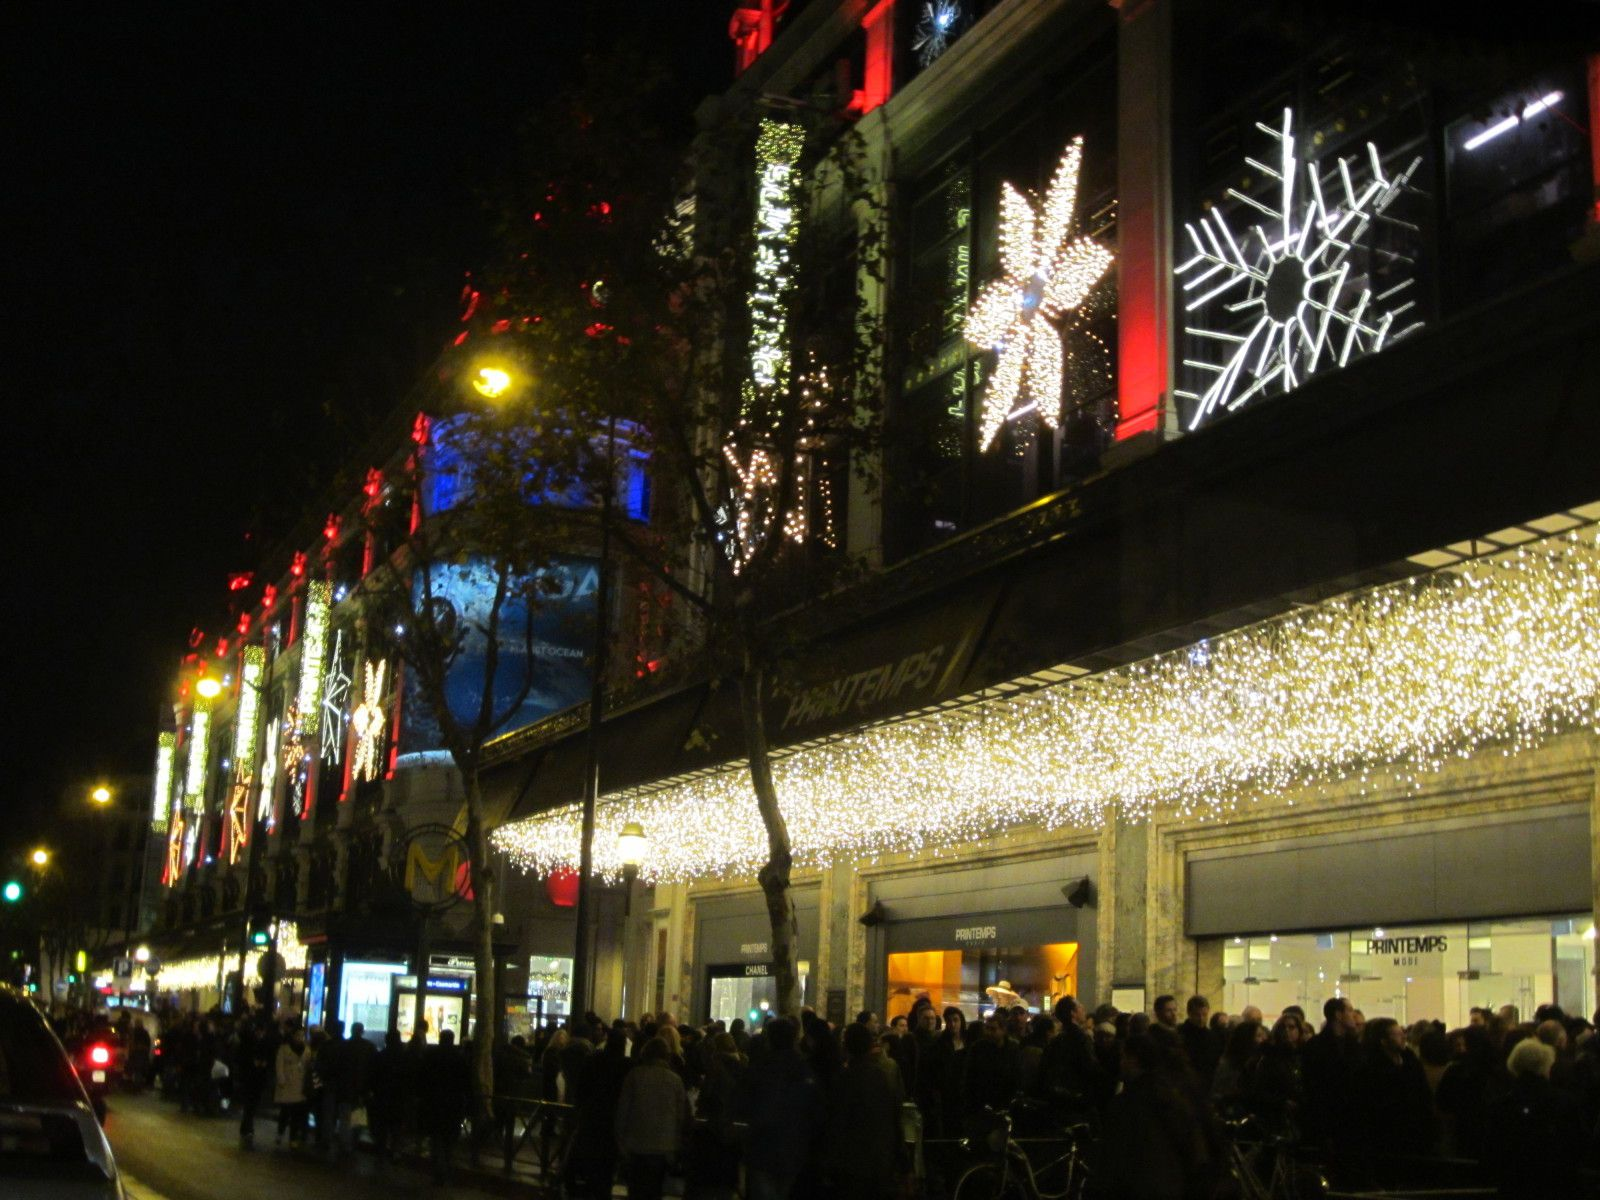 #AF211C ImmoAlternativ€: Printemps Galeries Lafayette Champs  5365 decorations de noel champs elysees 1600x1200 px @ aertt.com